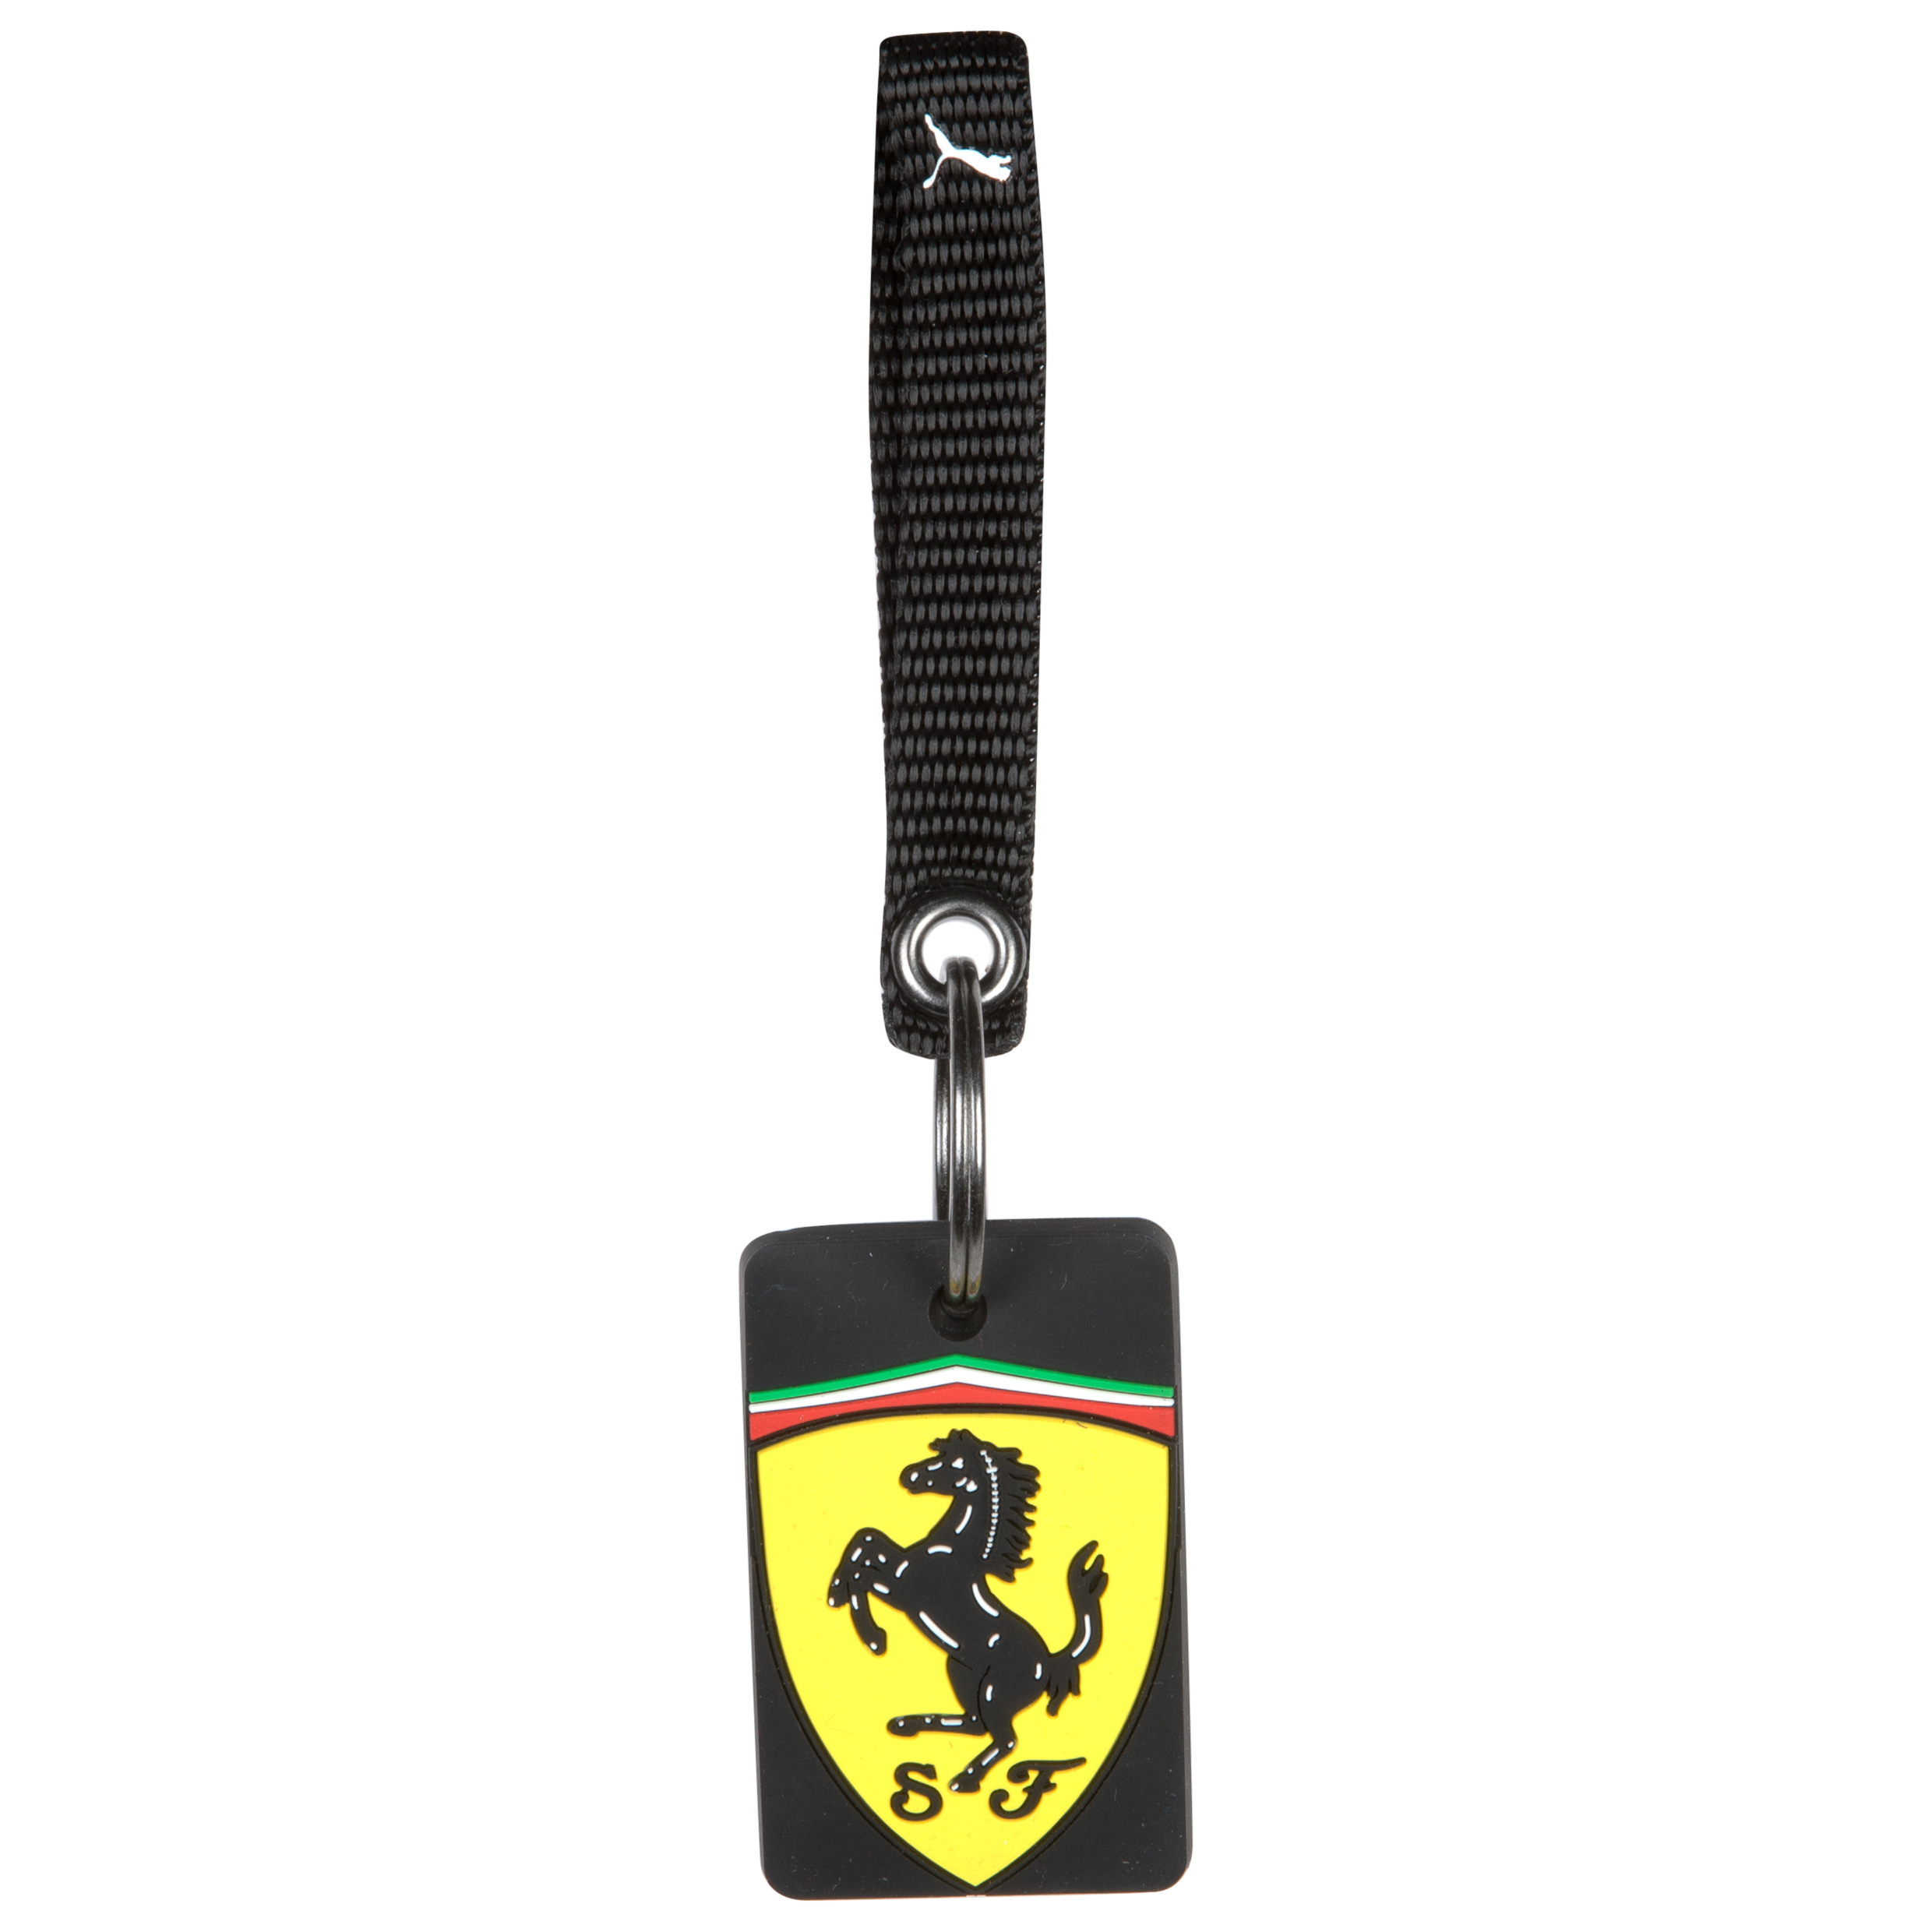 Scuderia Ferrari 2012 Keyring - Black/Yellow